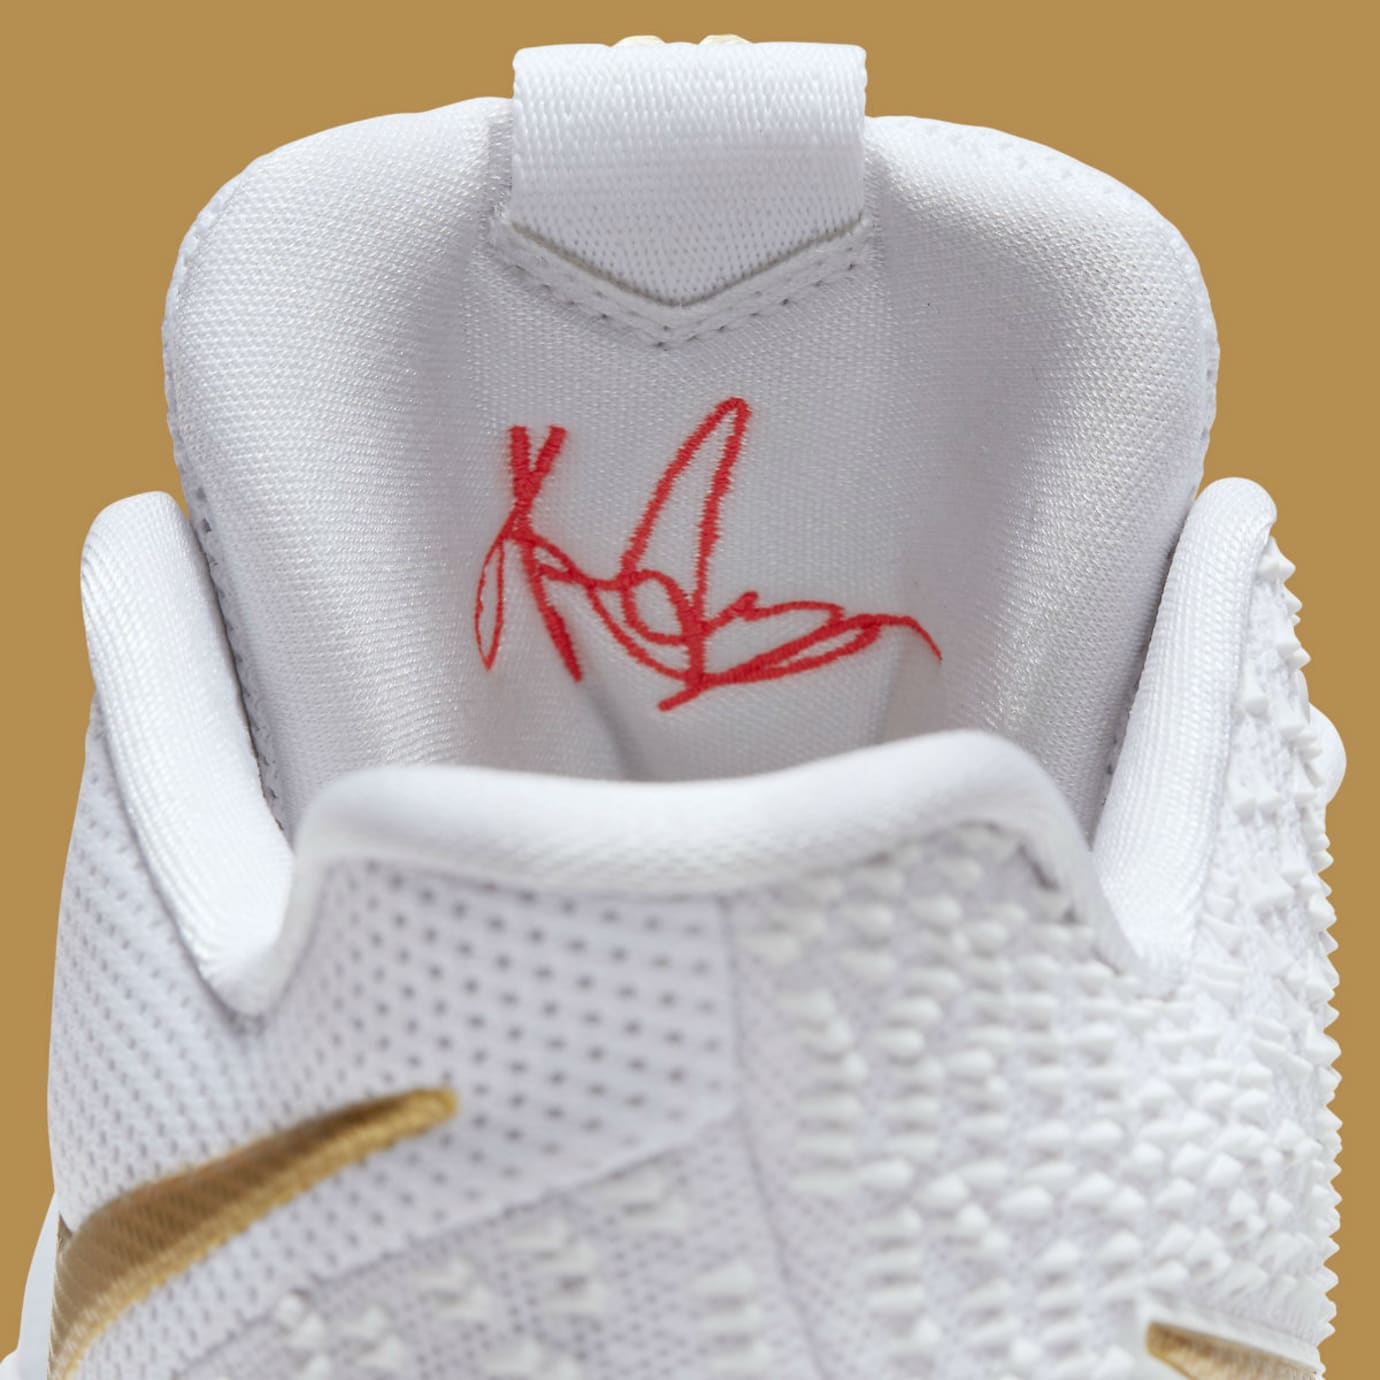 Nike Kyrie 3 White/Gold Release Date Tongue 852396-902